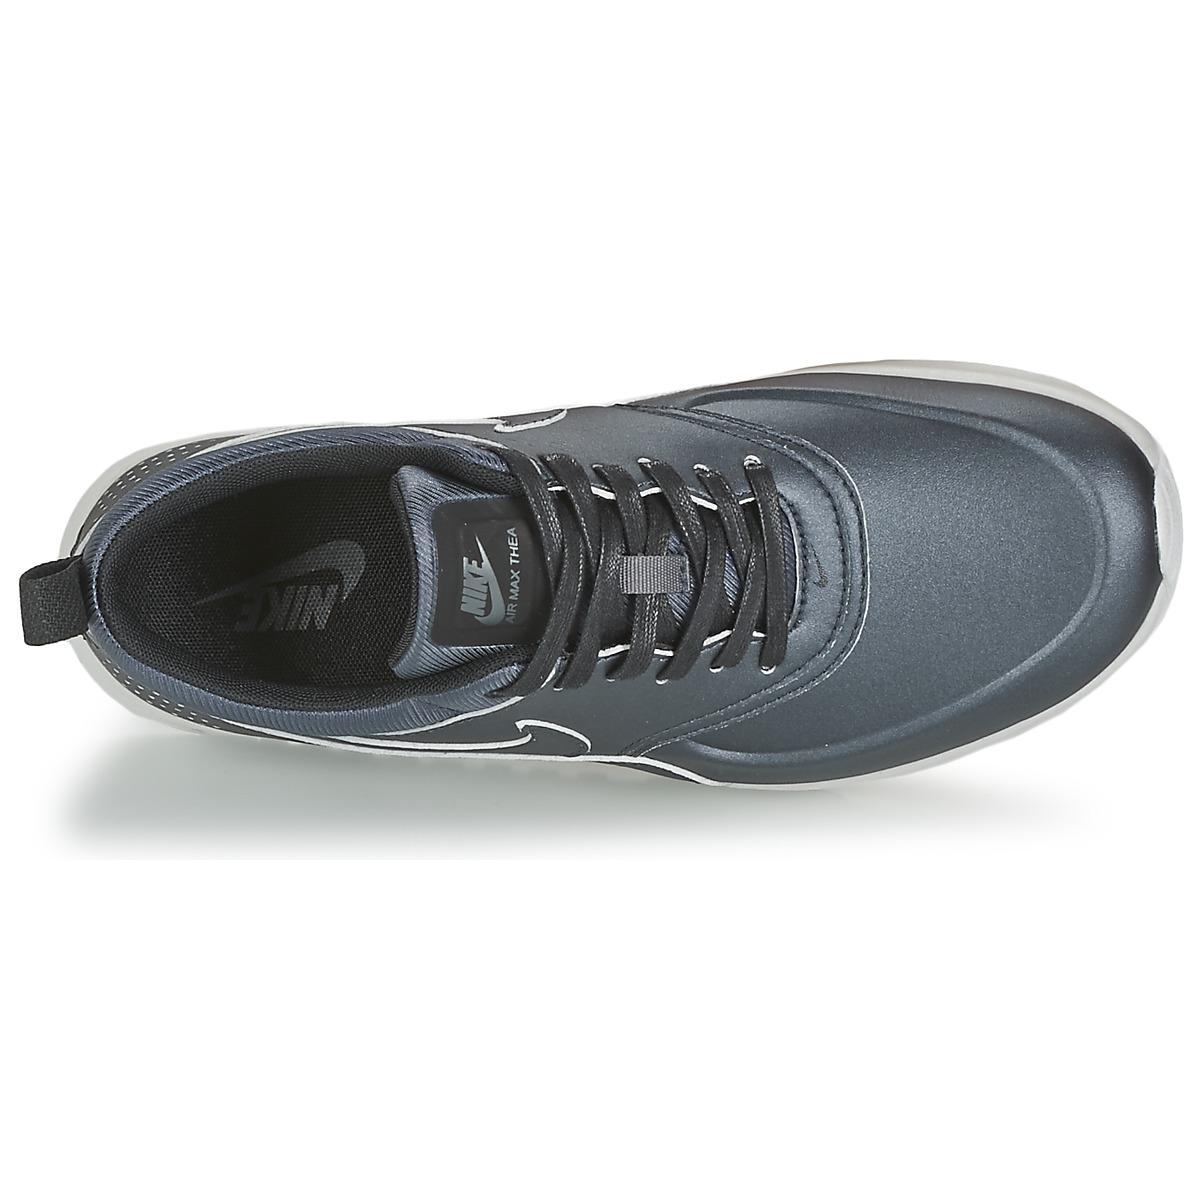 Nike Rubber Air Max Thea Se W Shoes (trainers) in Grey (Grey)